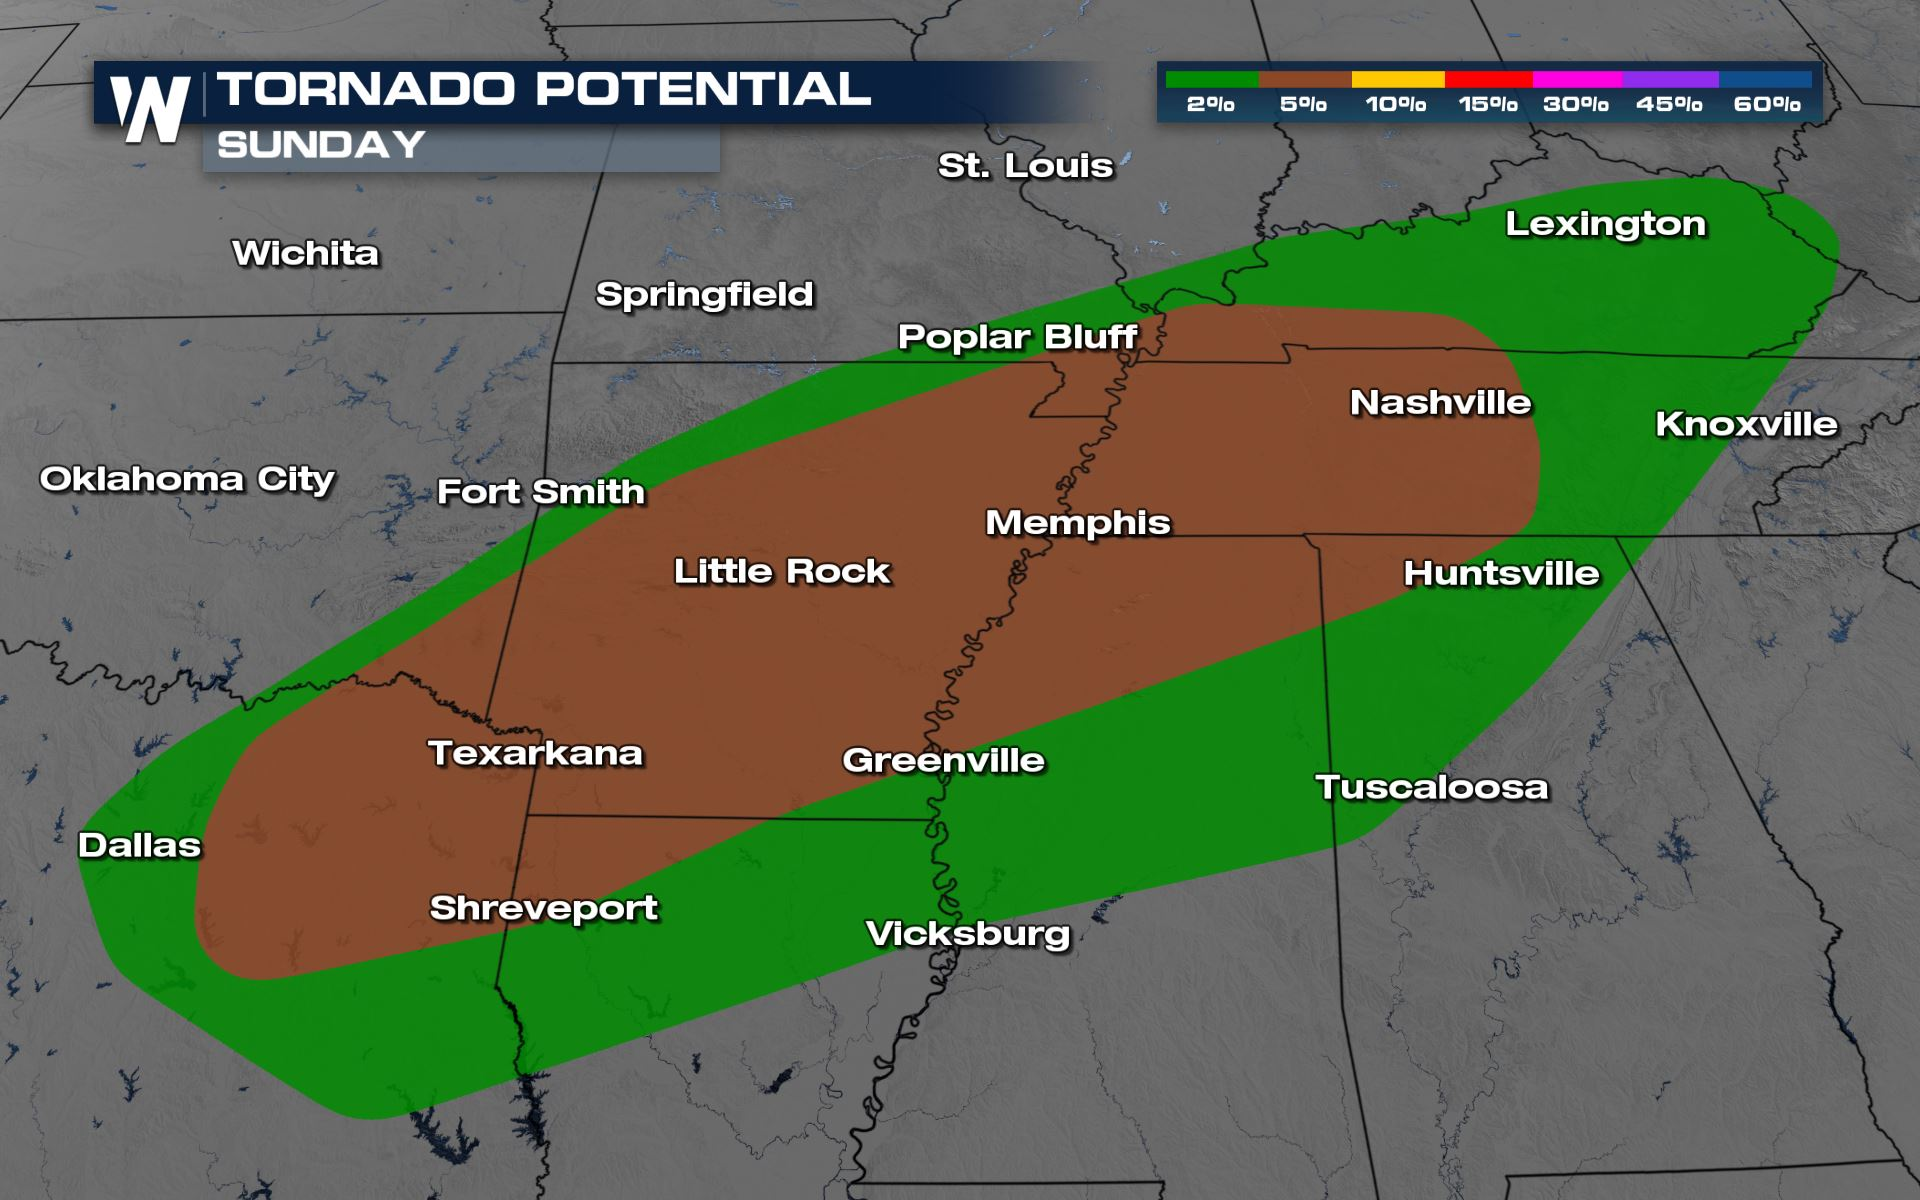 Severe Risk from Texas to Middle Tennessee on Sunday